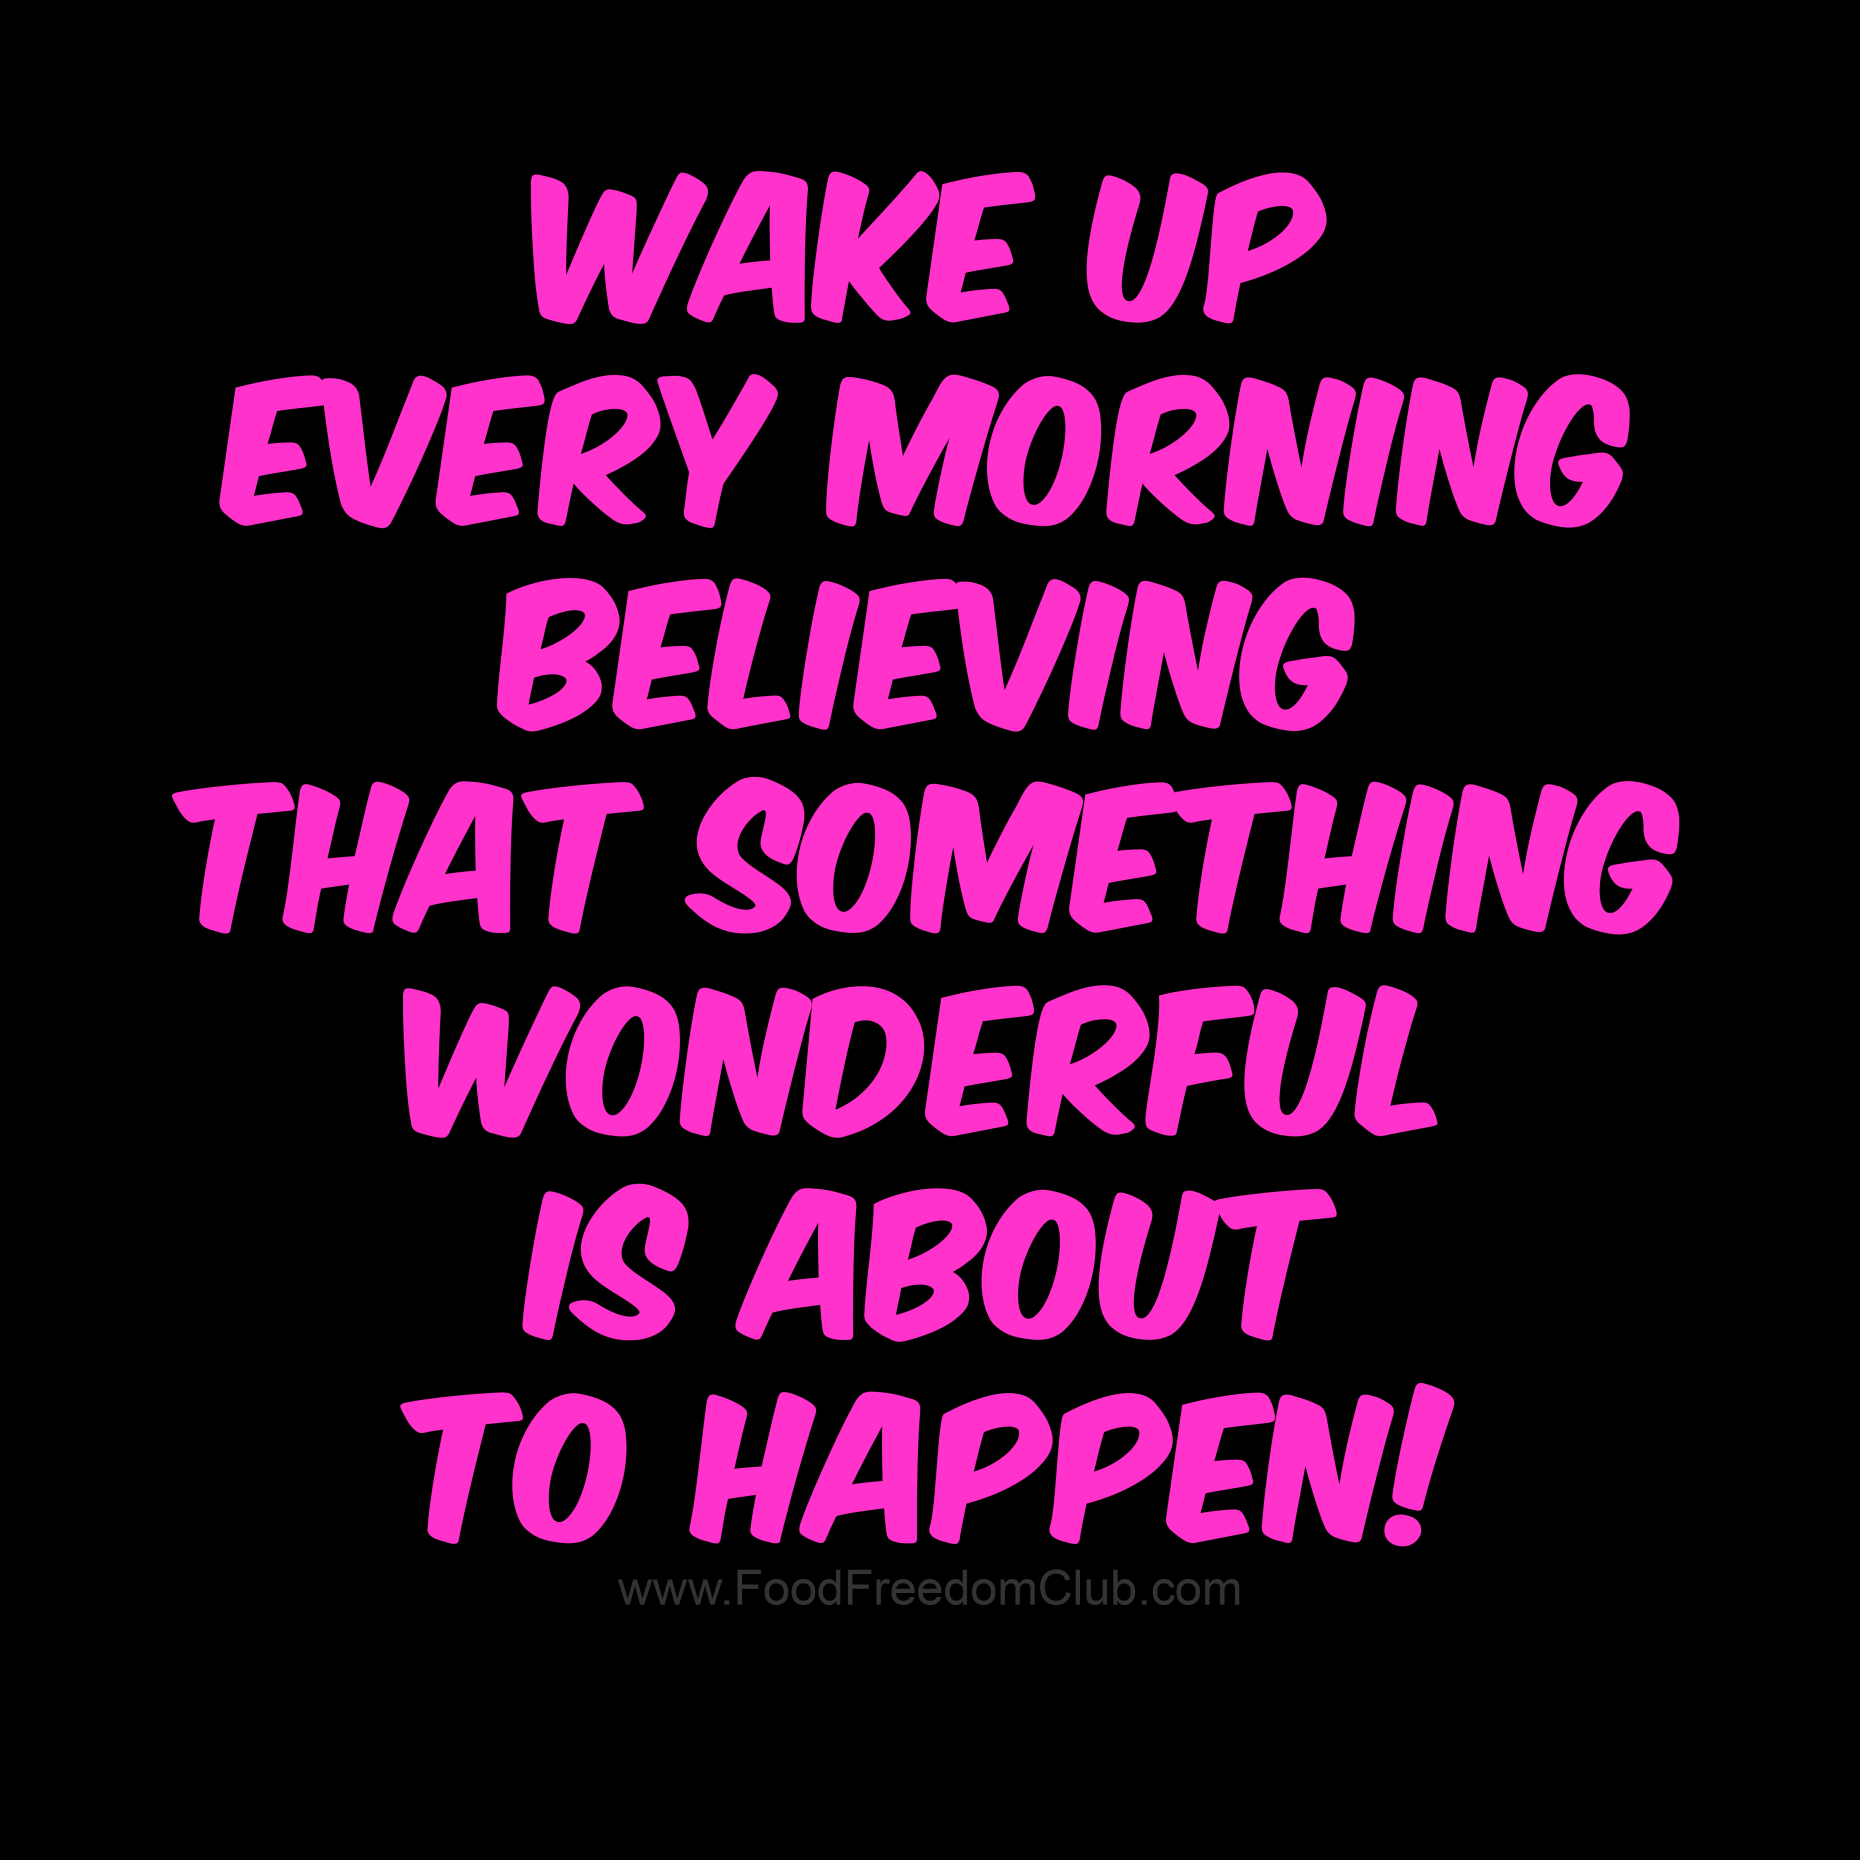 Wake Up Every Morning Believing That Something Wonderful Is About To Happen Bp Ffc Foodfreedomclub Funny Quotes For Teens Funny Memes About Life Some Words